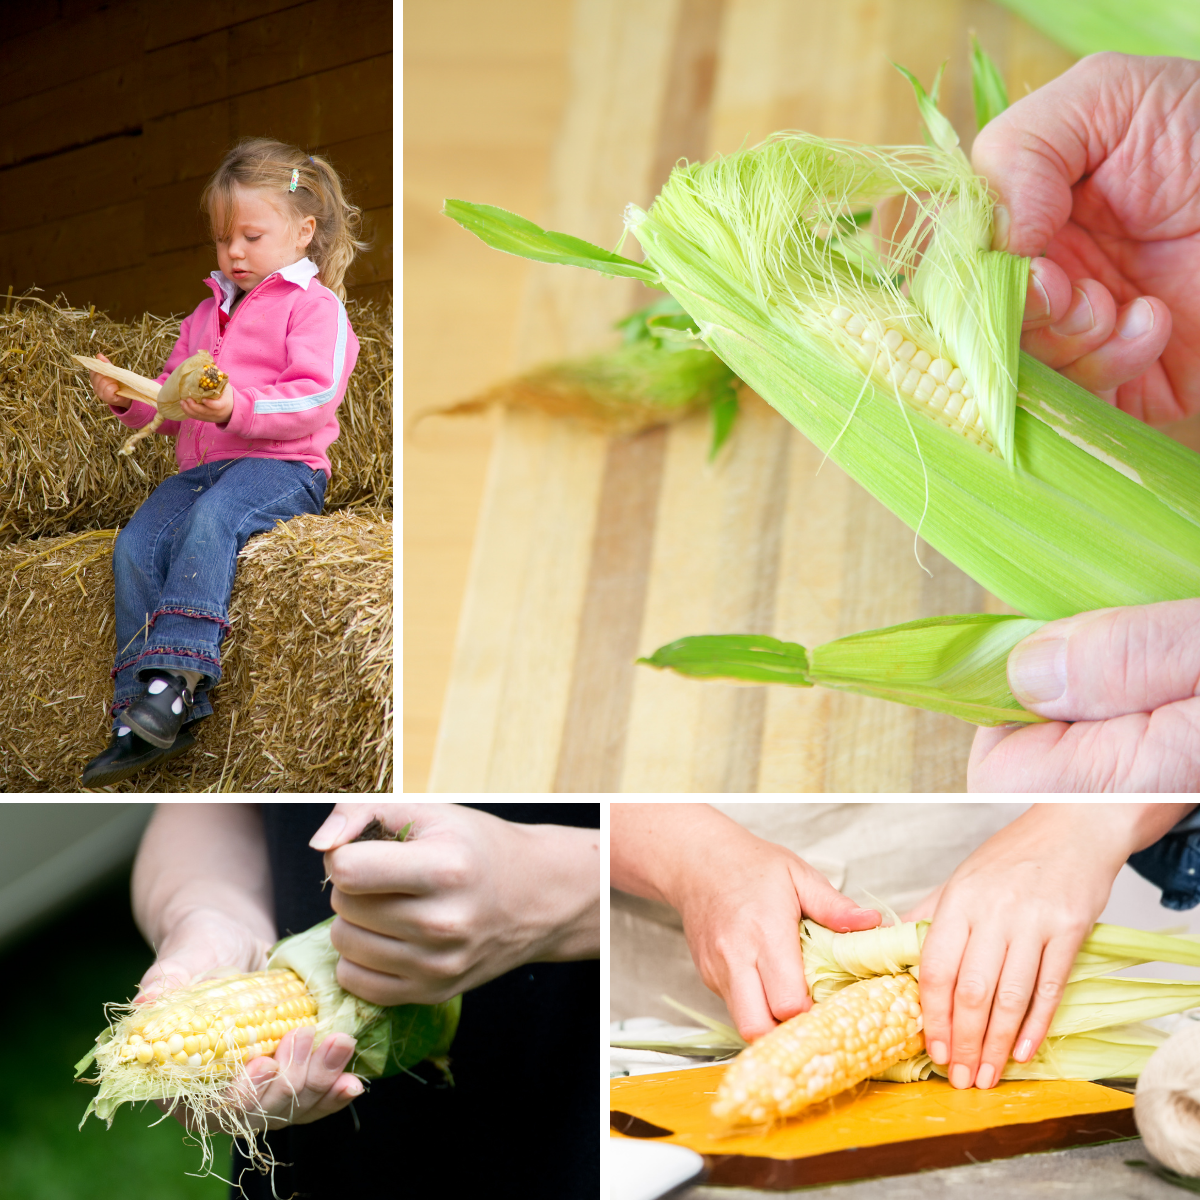 grid of four images showing stages of shucking corn